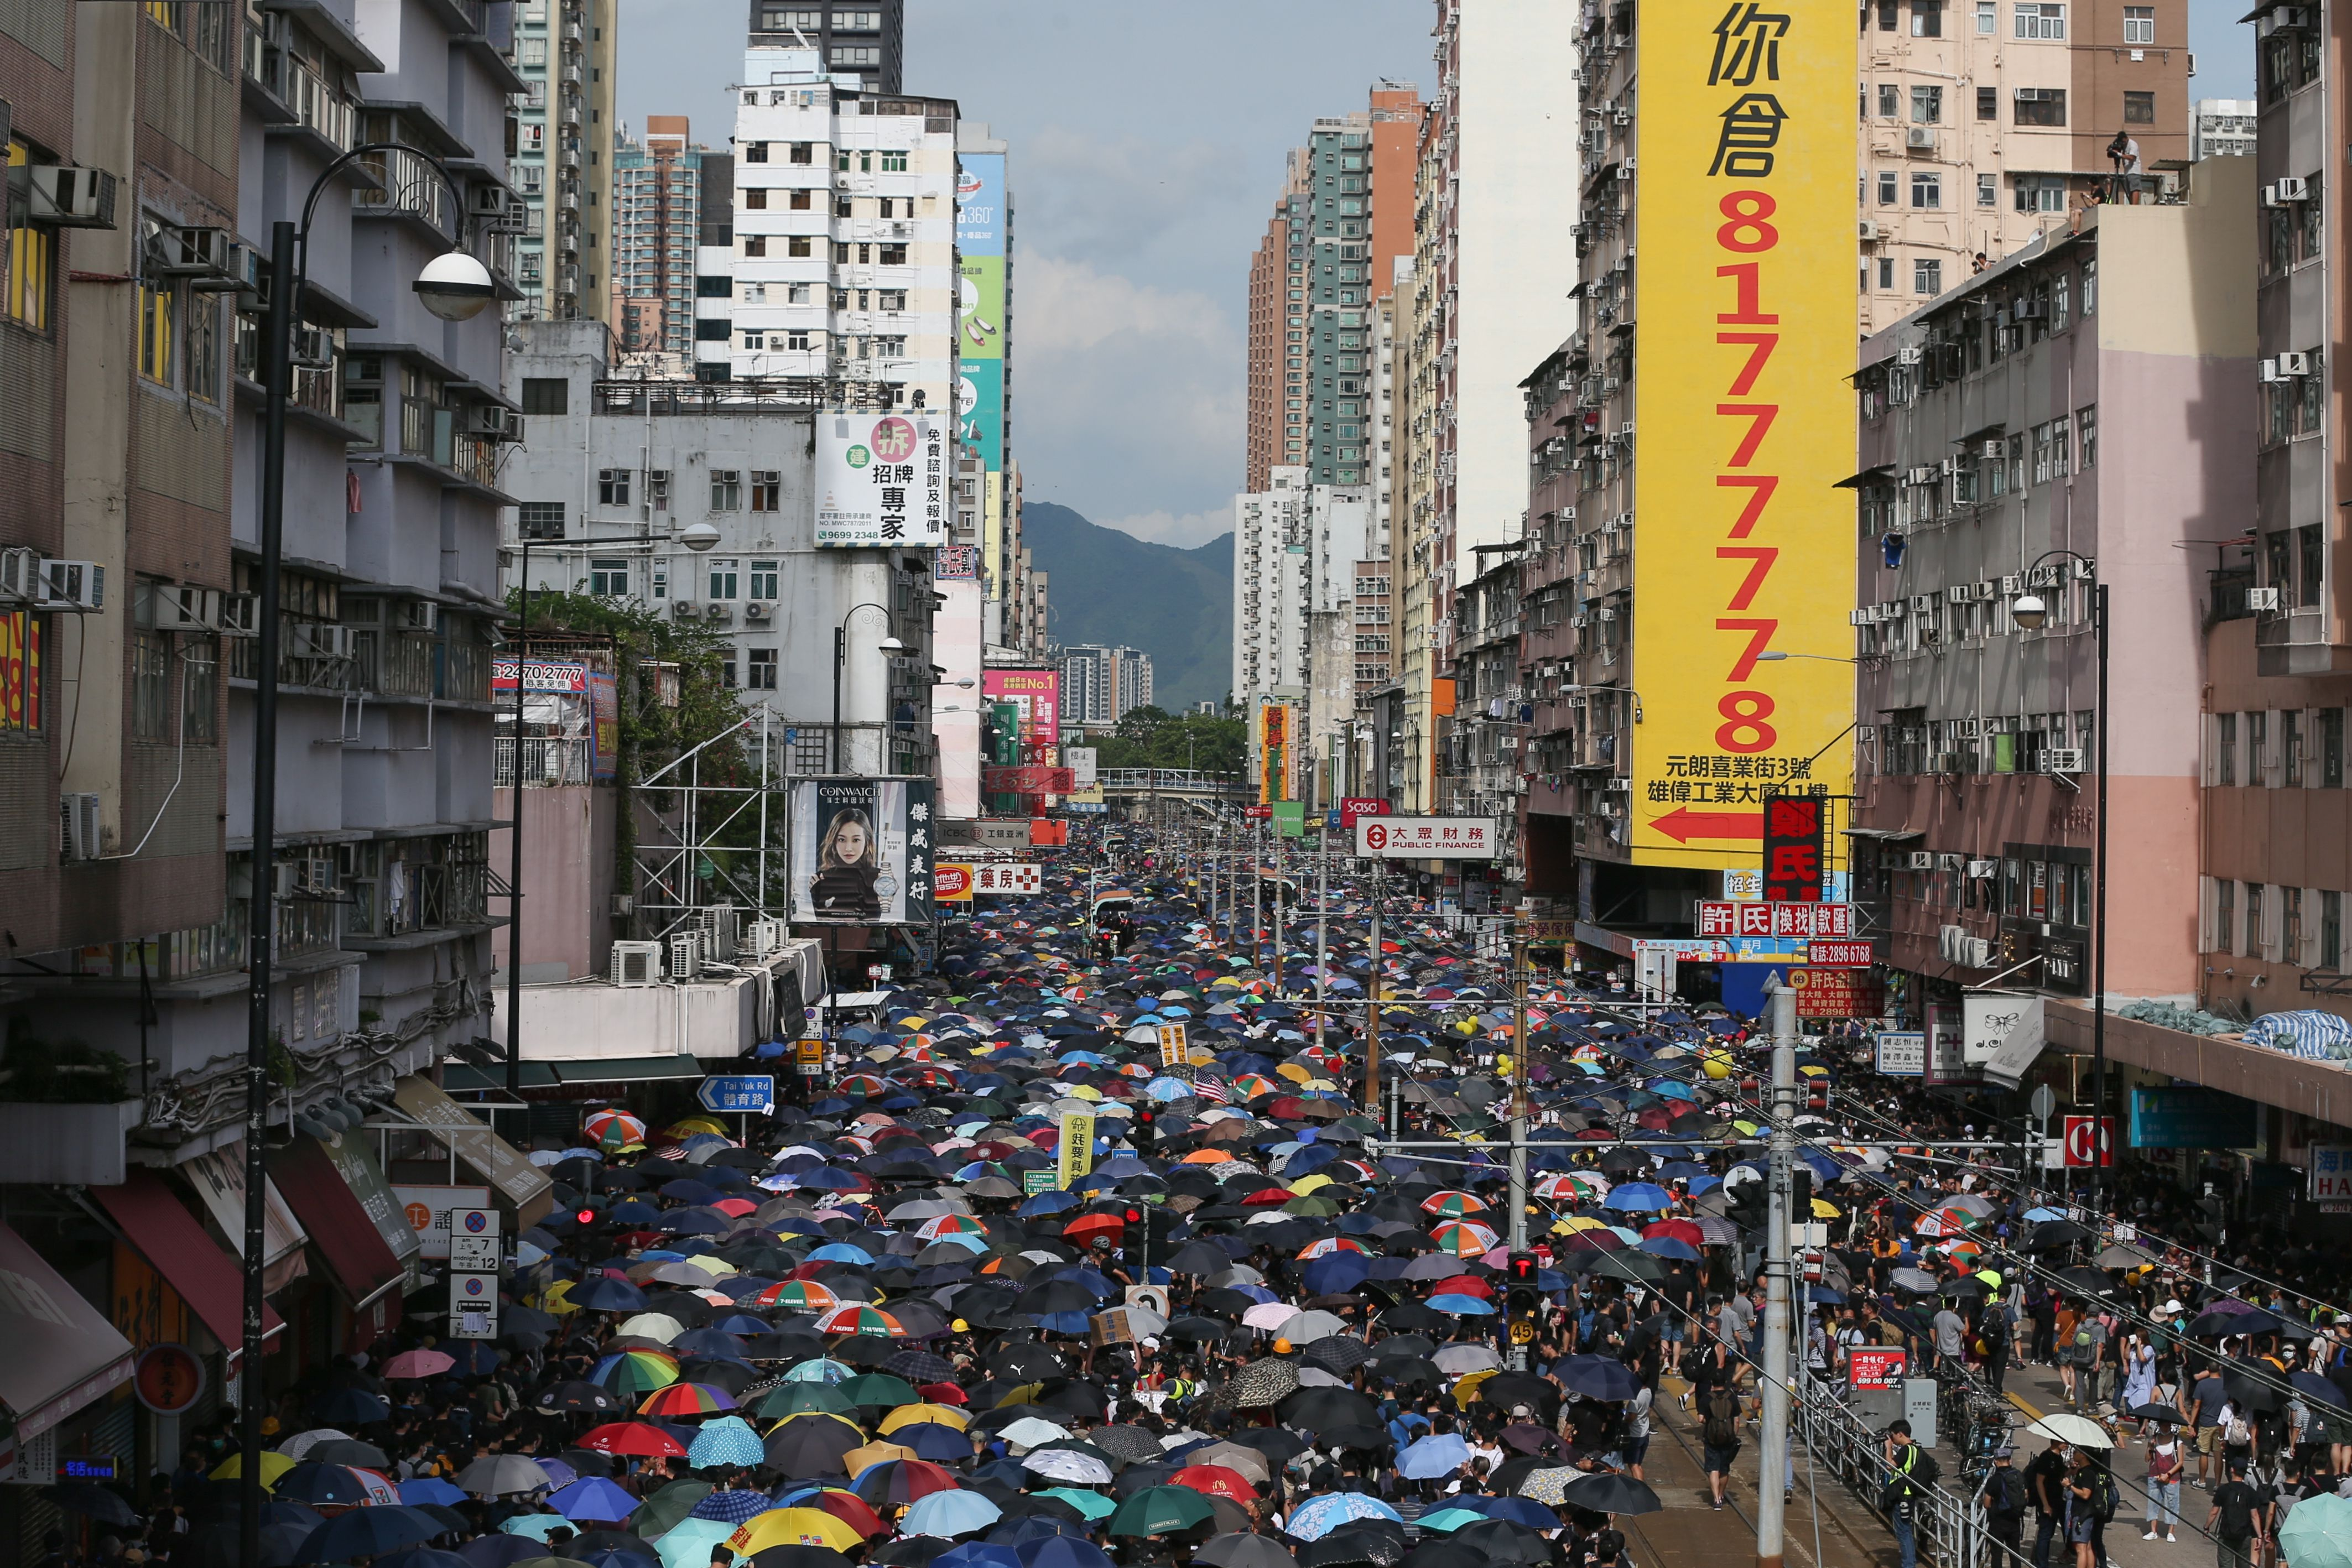 Anti-extradition bill protesters attend a mass rally in Yuen Long, New Territories, Hong Kong